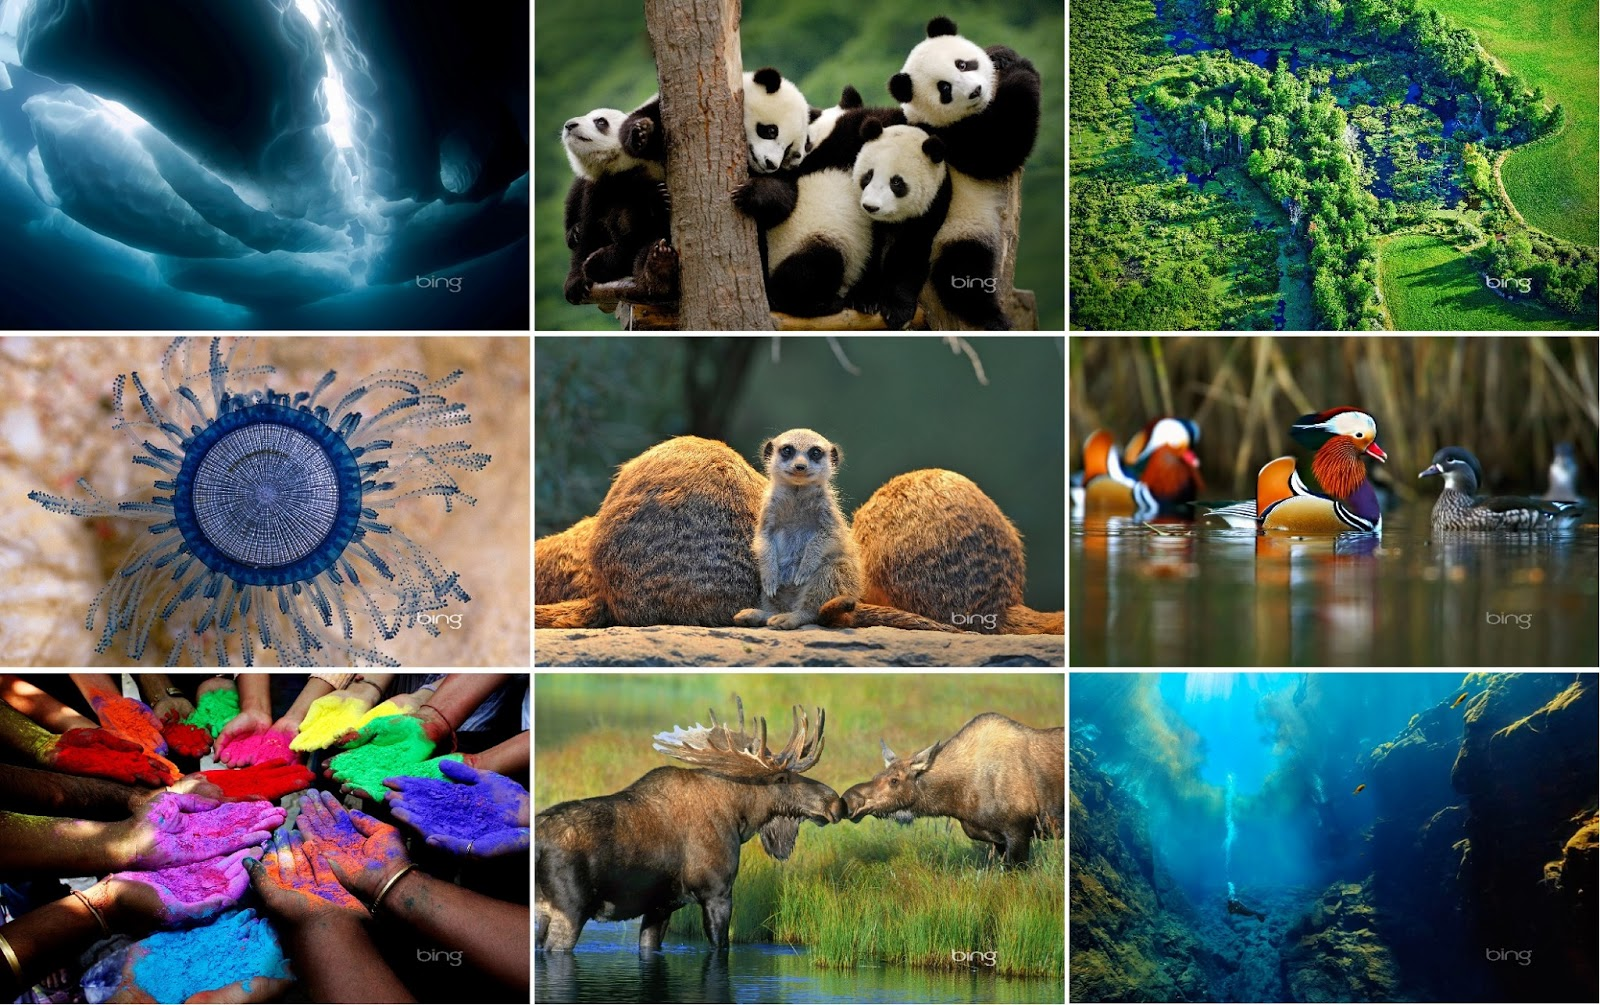 download bing wallpapers pack 2013 at of cost bing wallpapers 1600x1005